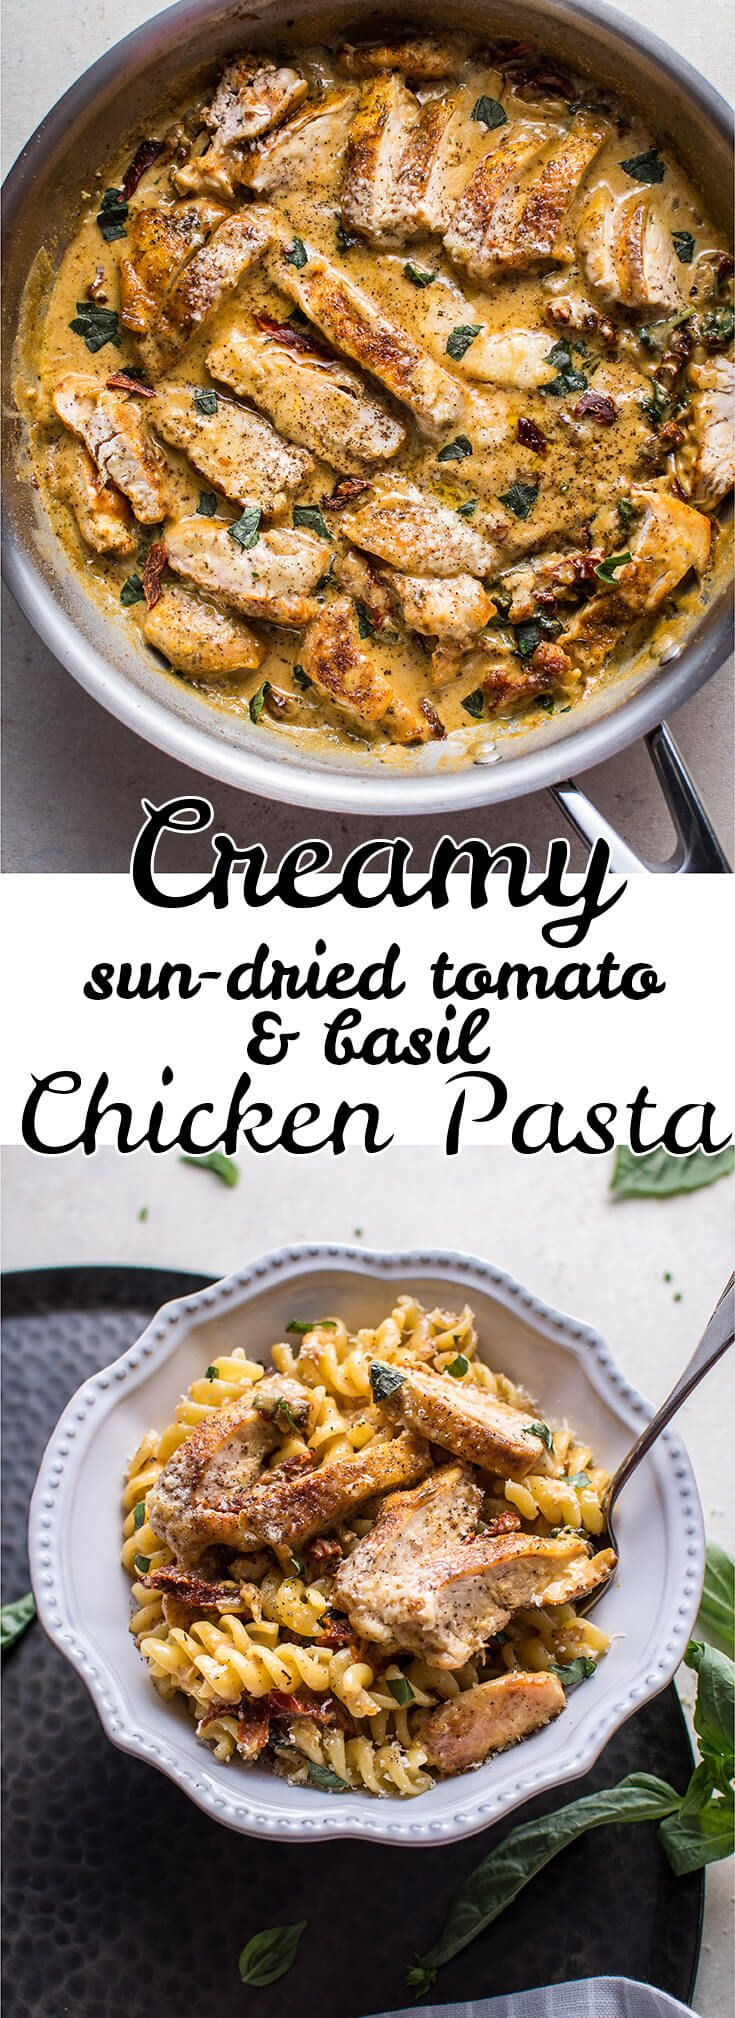 This creamy sun-dried tomato and basil chicken pasta is fast, easy to make, and full of flavor!